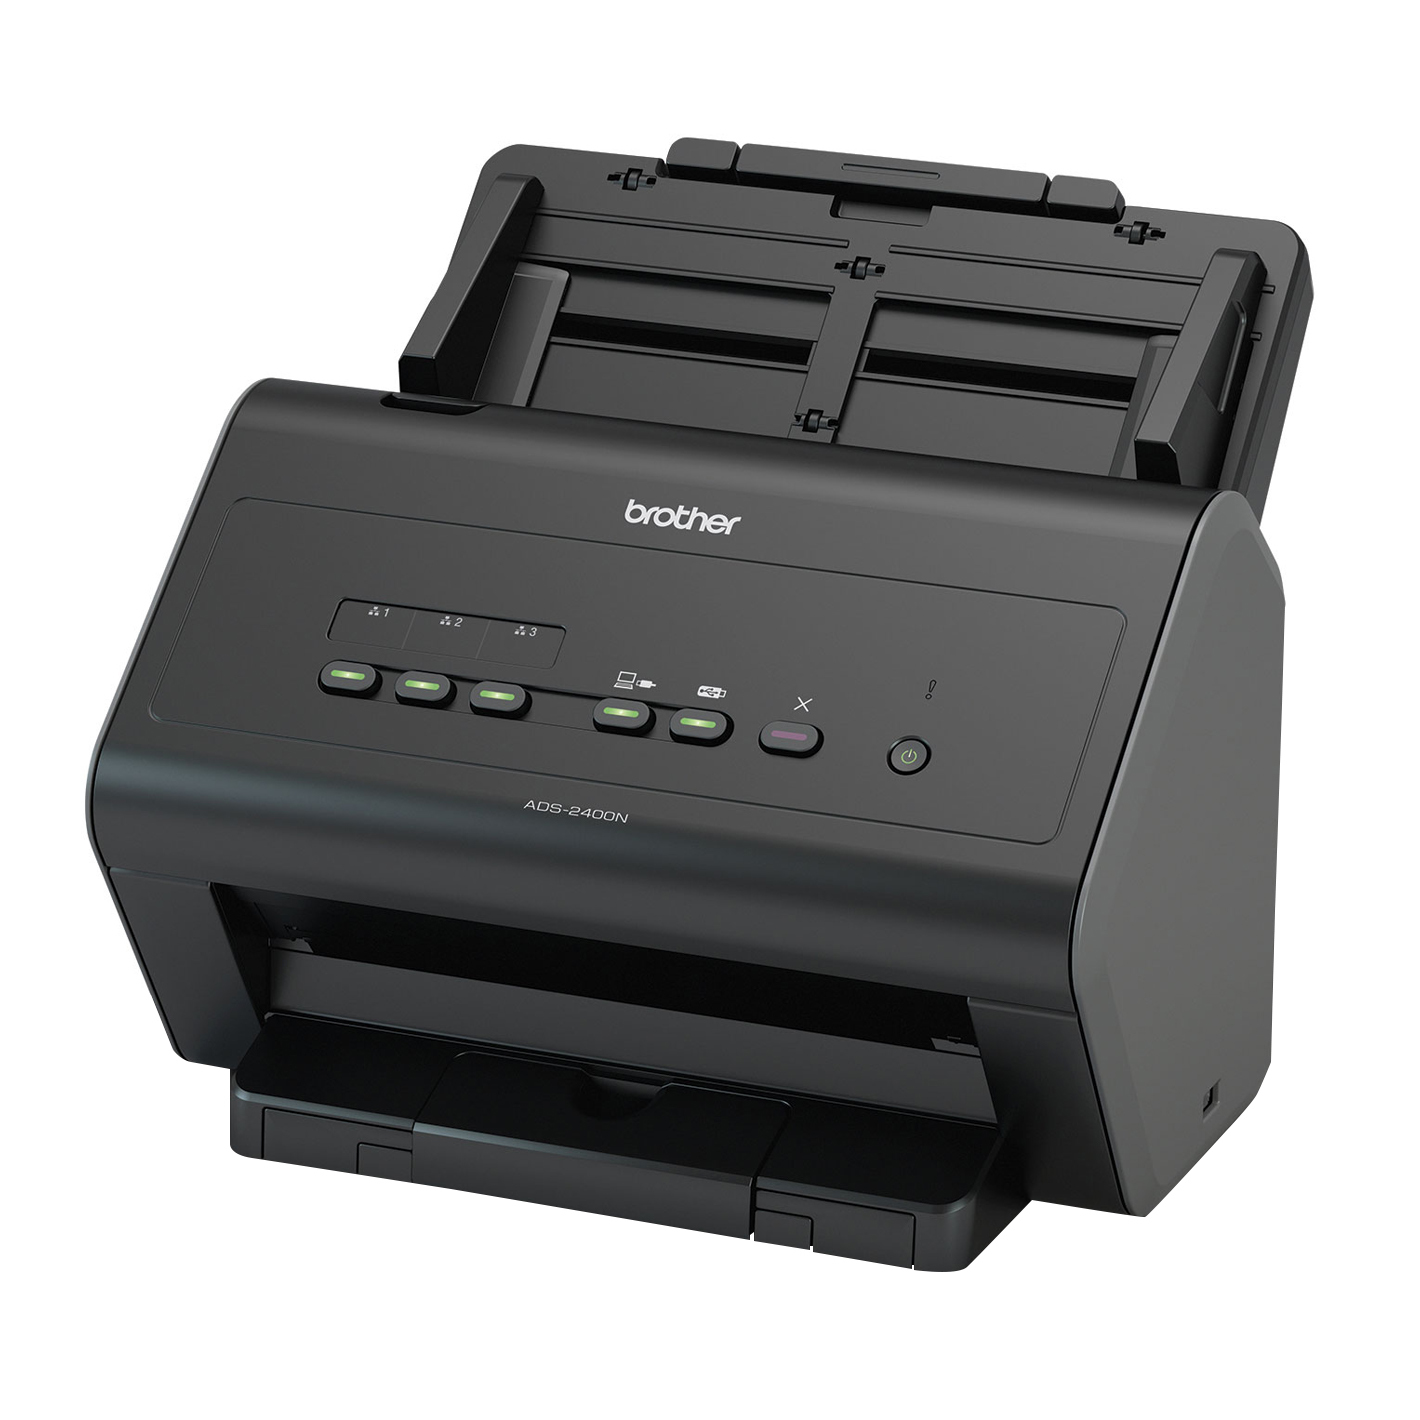 Image Center Ads-2400n Desktop Scanner With Gigabit Ethernet Networking